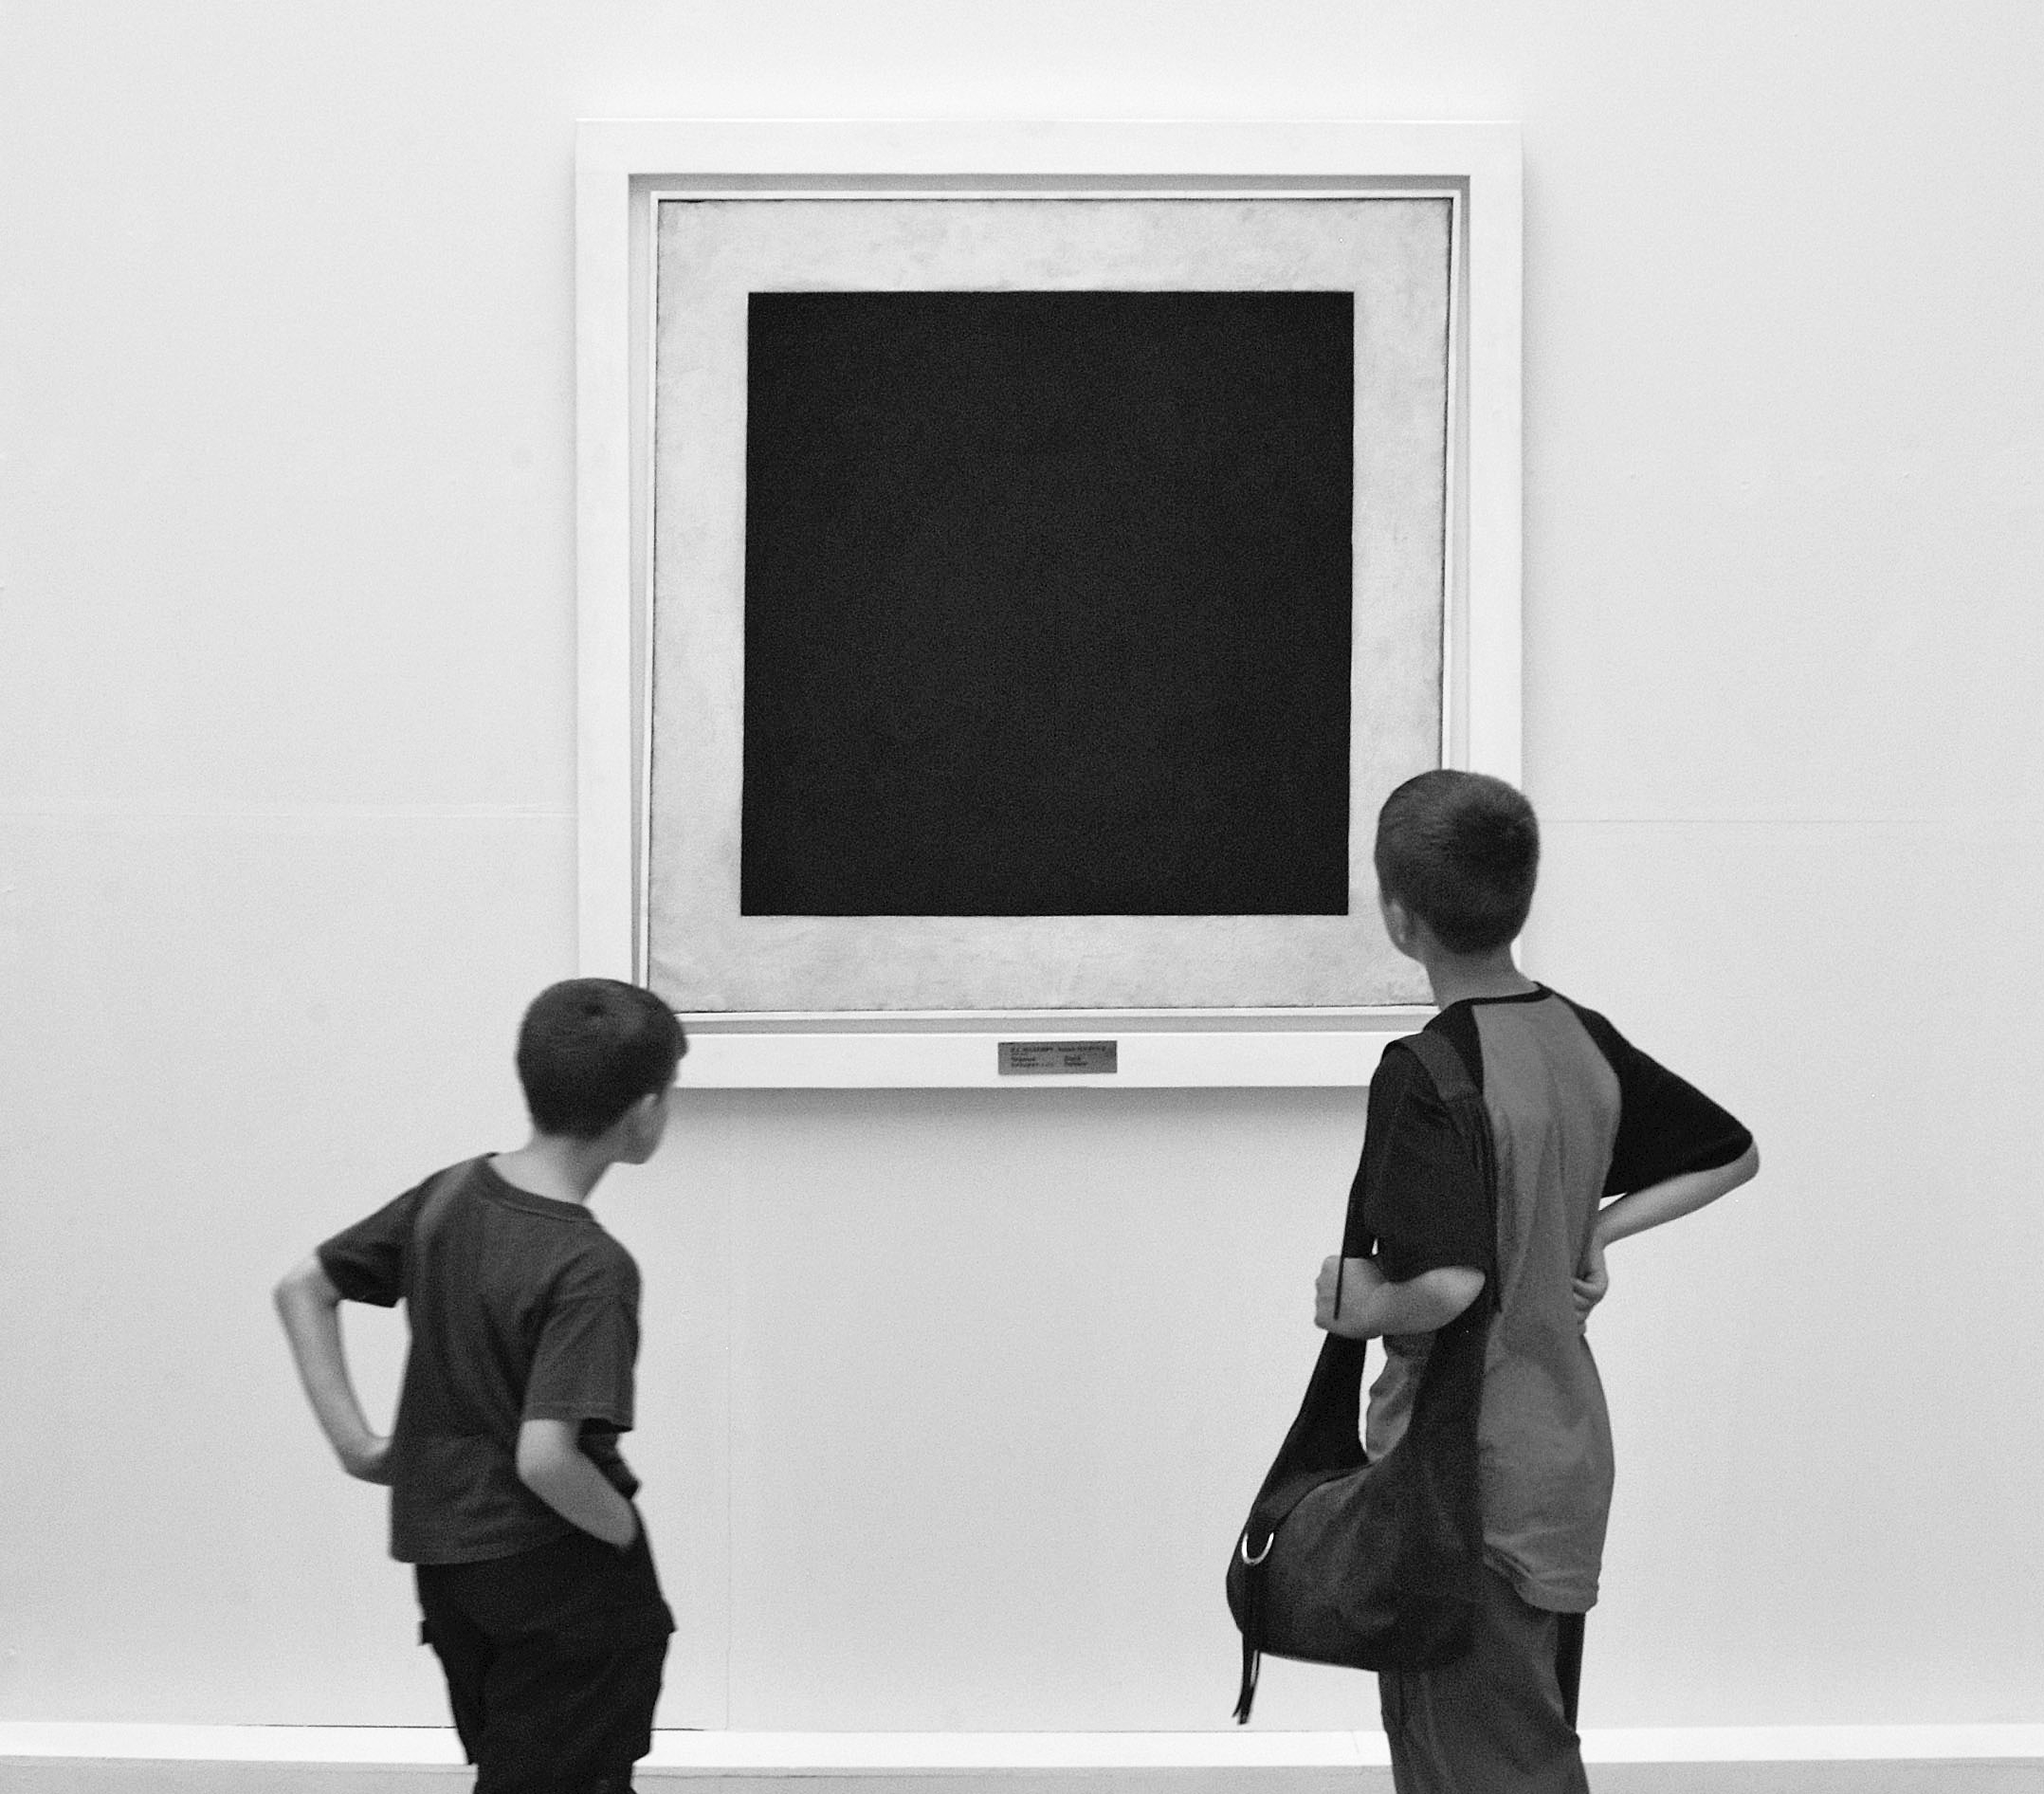 """Museum-goers baffled by Malevich's """"Black Square."""" (www.sergeev.com)"""